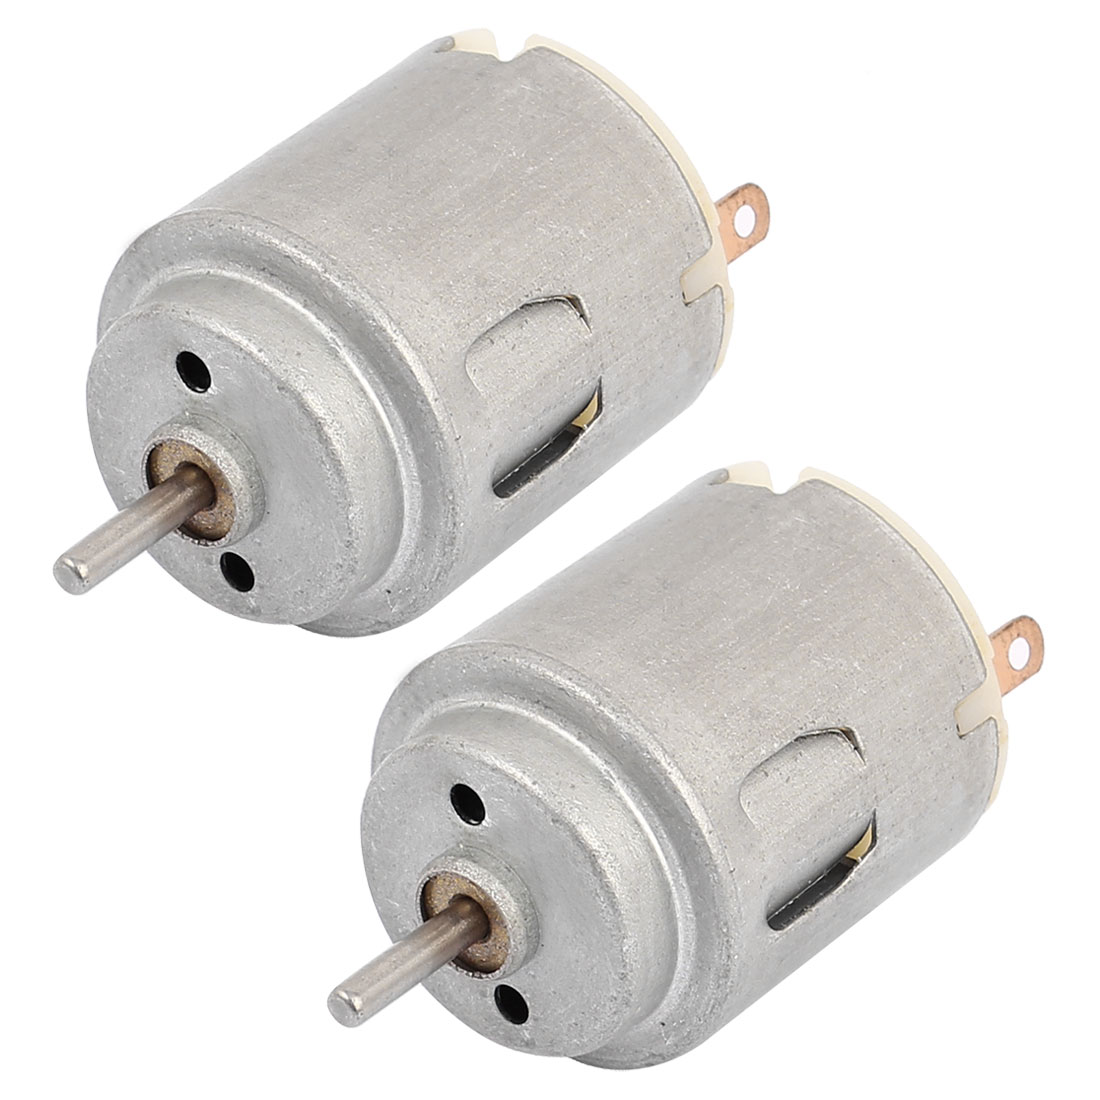 2 Pcs DC 3-6V 16500 RPM Rotary Speed High Torque Micro Motor For Toys